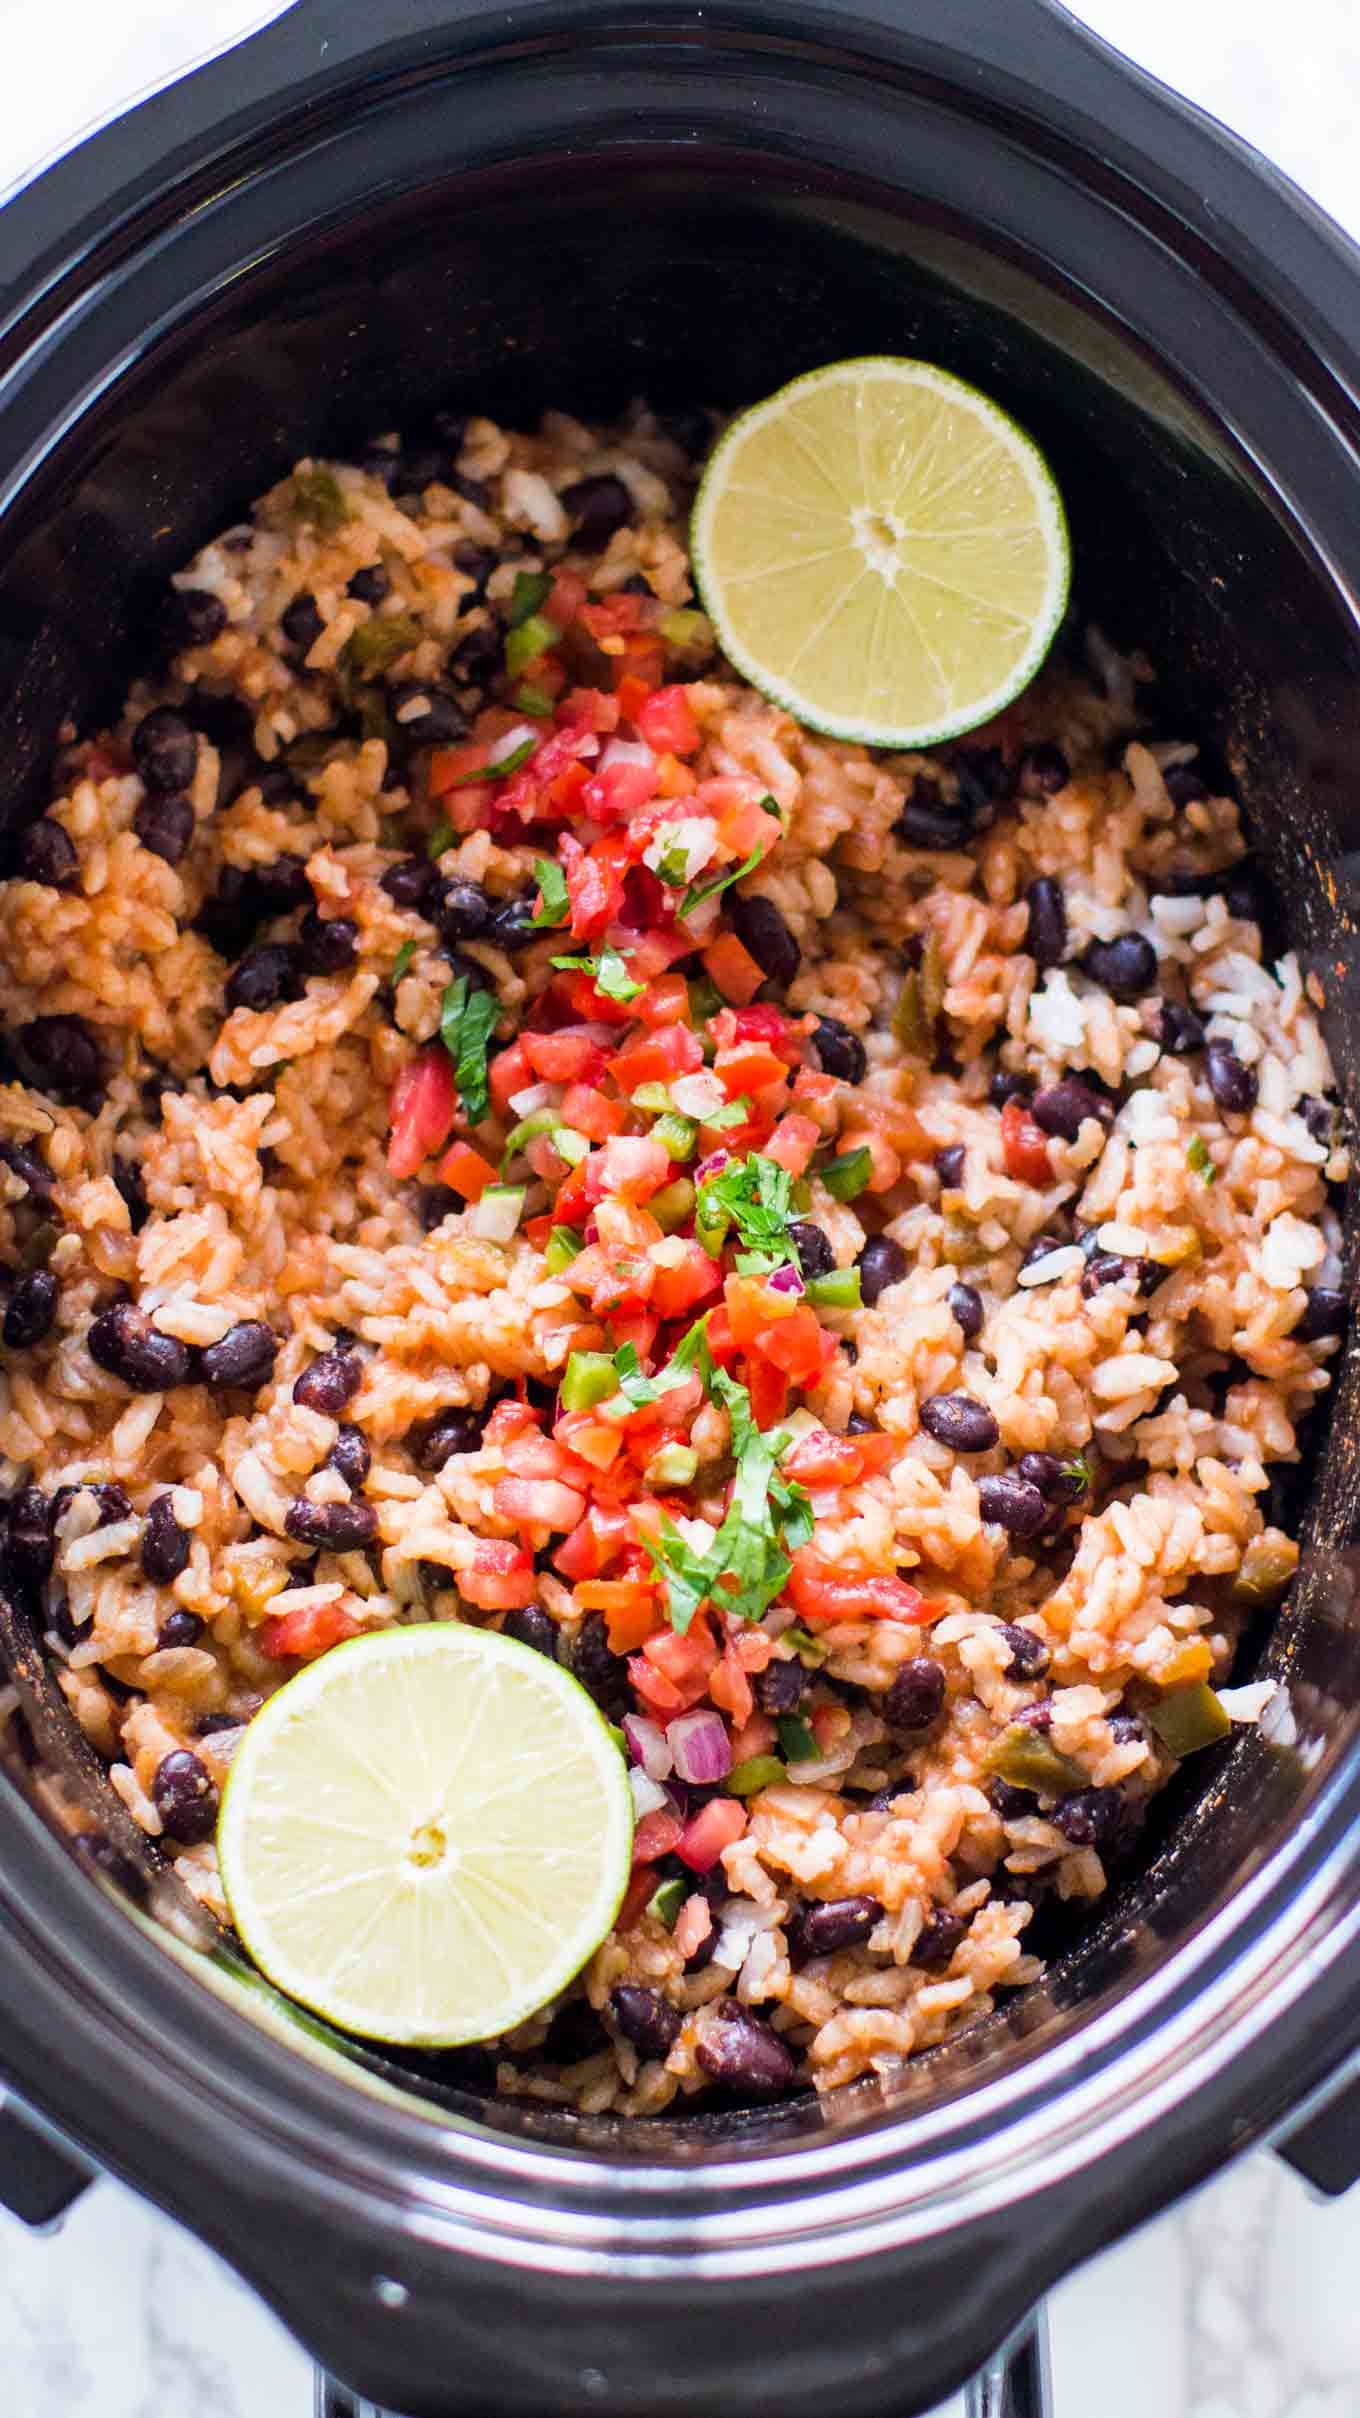 How to prepare rice and beans together